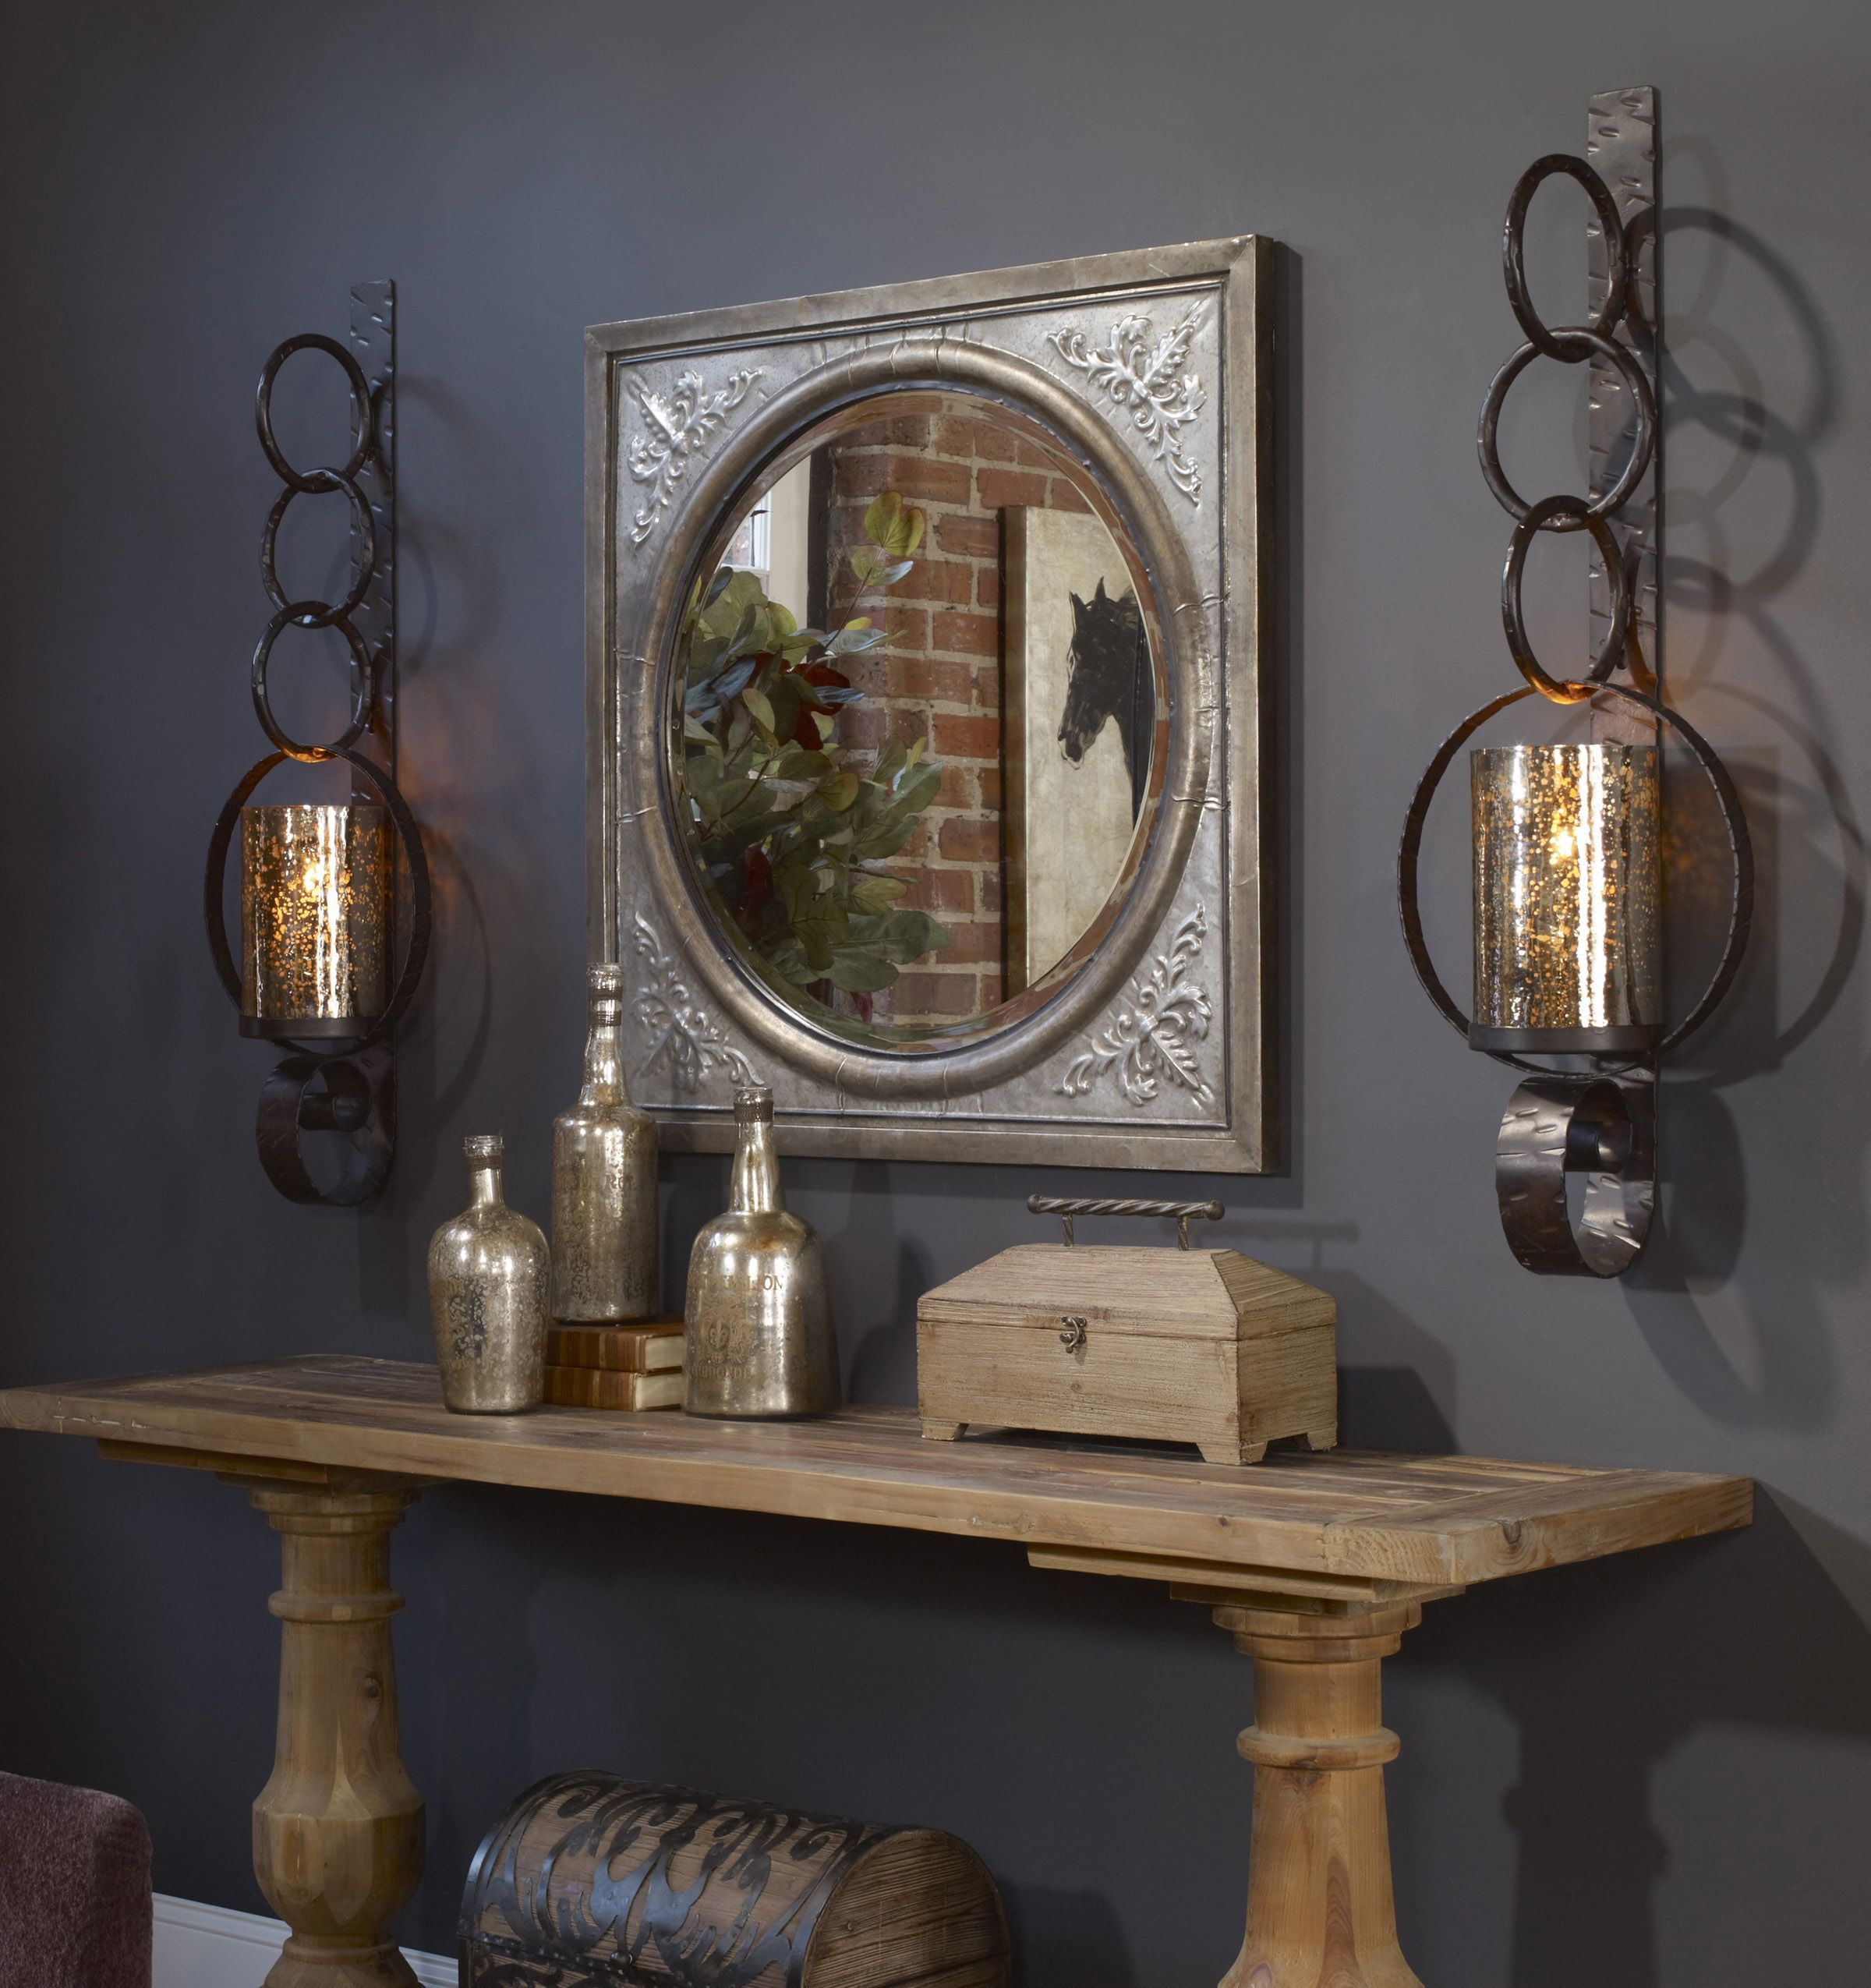 Glass console table with mirror uttermost ireneus burnished silver mirror  candle sconces